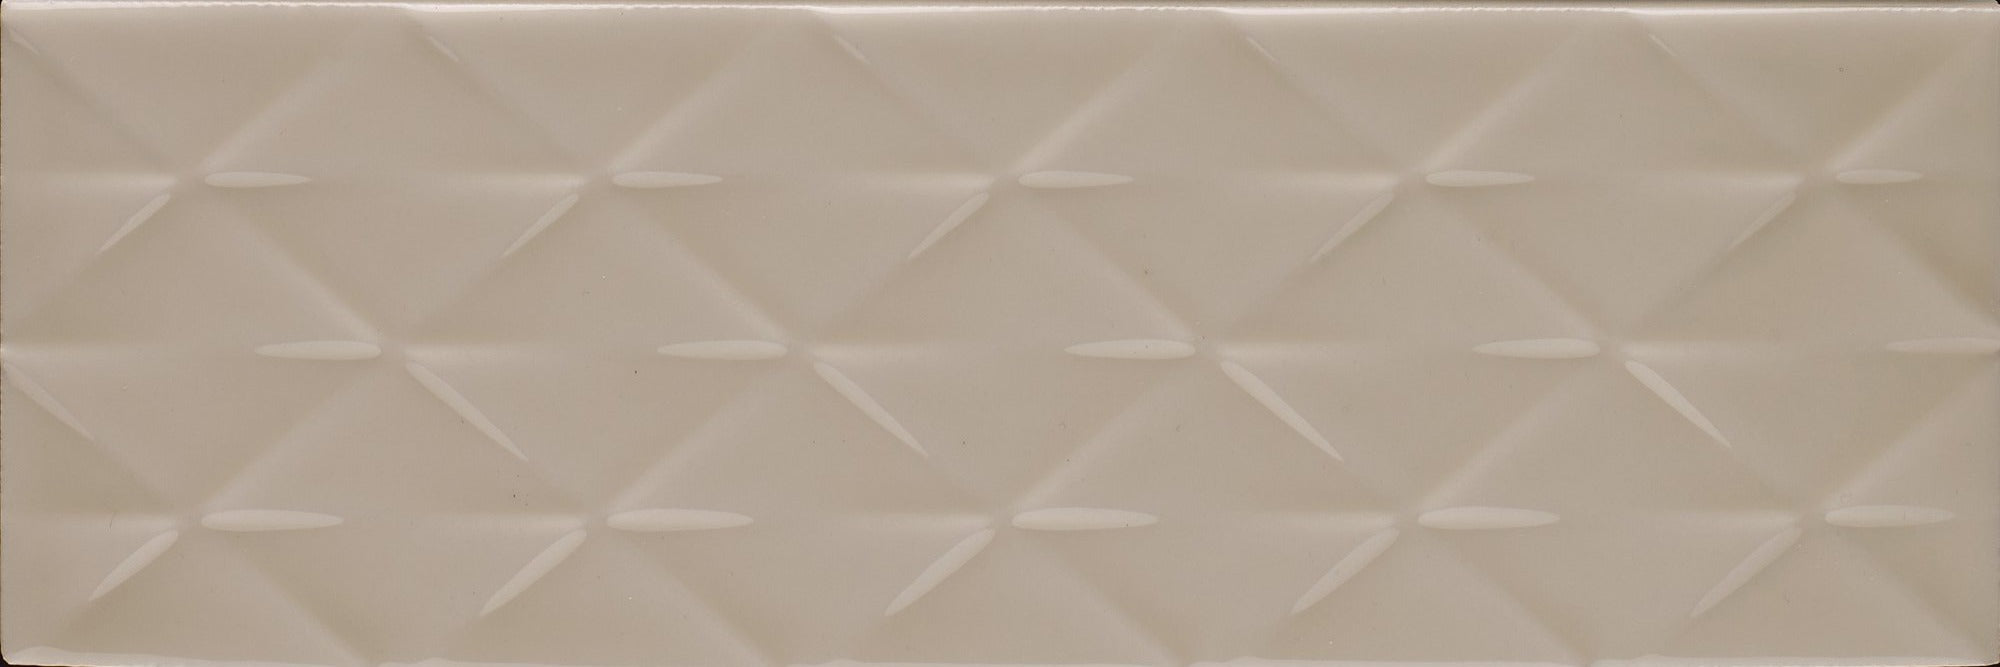 10x30cm Savoy Oat gloss decor wall tile-Johnson Tiles-Brooke ceramics ltd